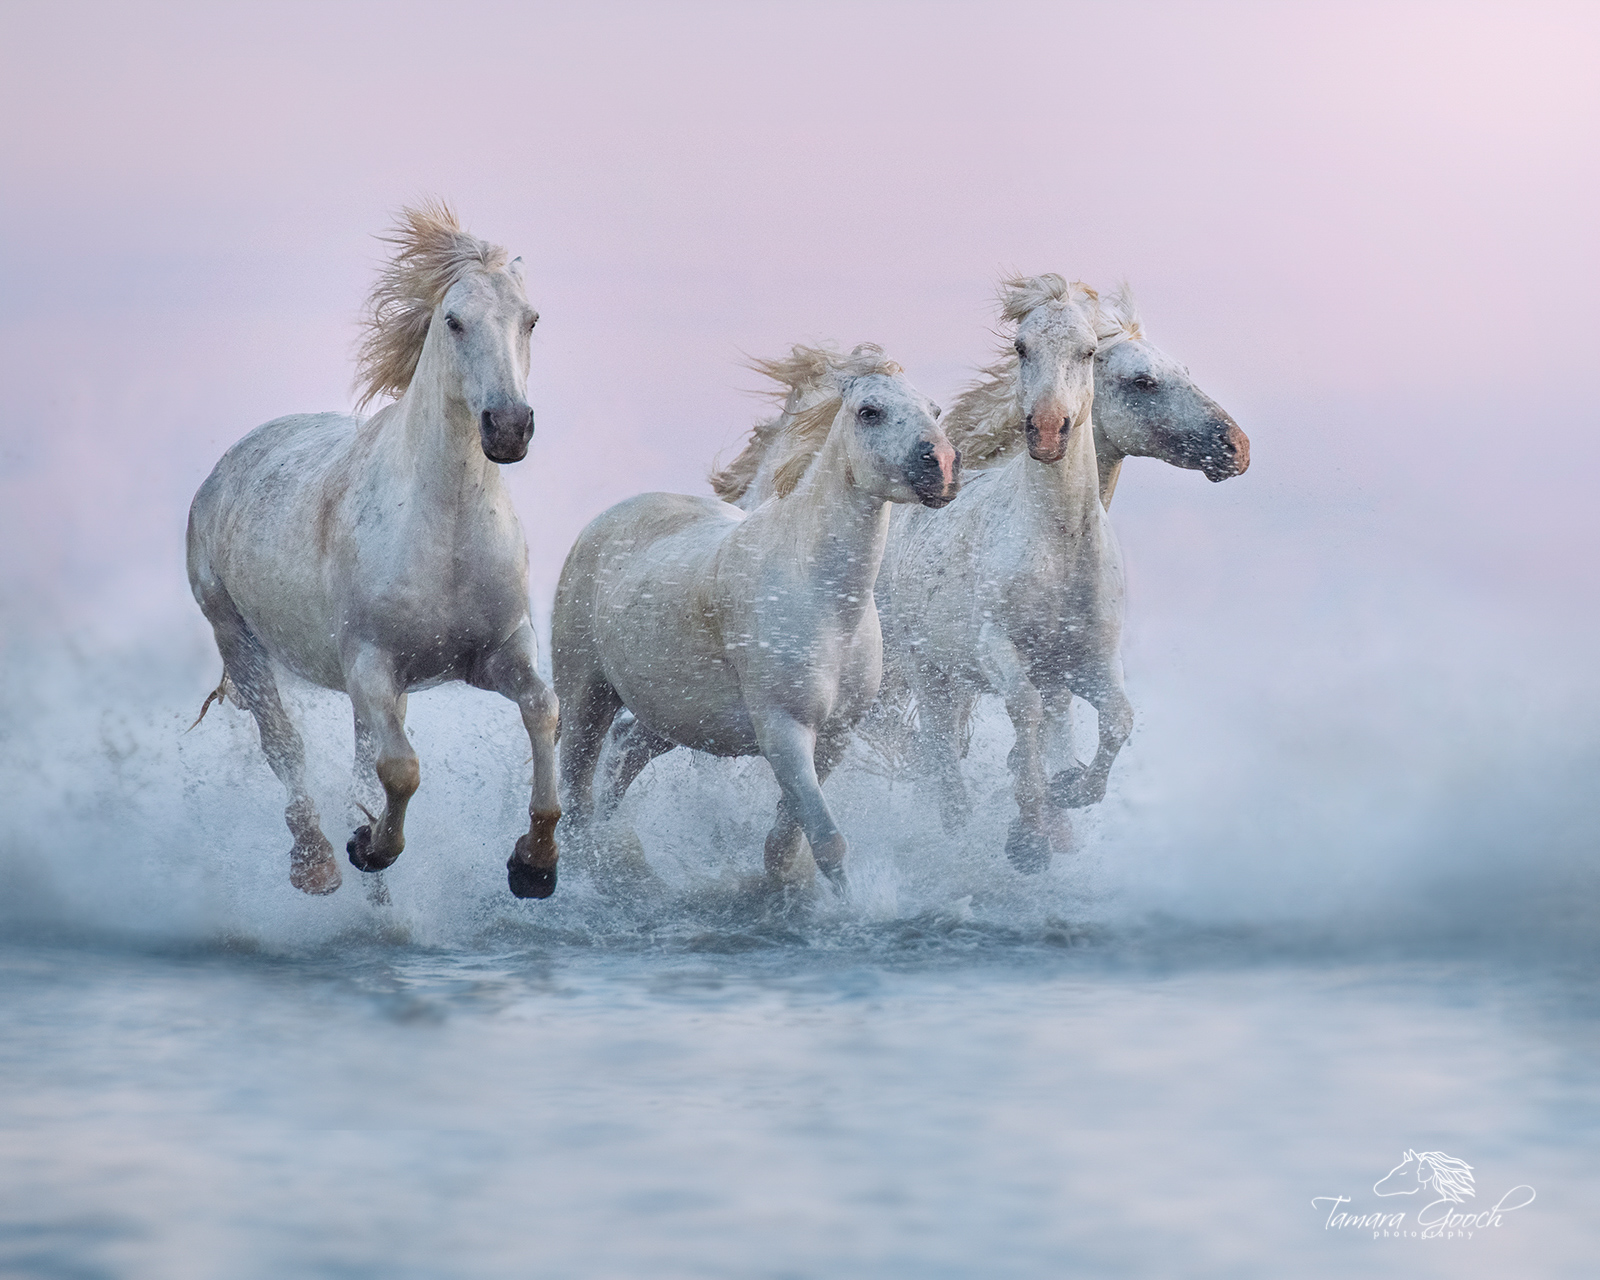 A photo of the white horses of the Camargue running through the water. Provence France.